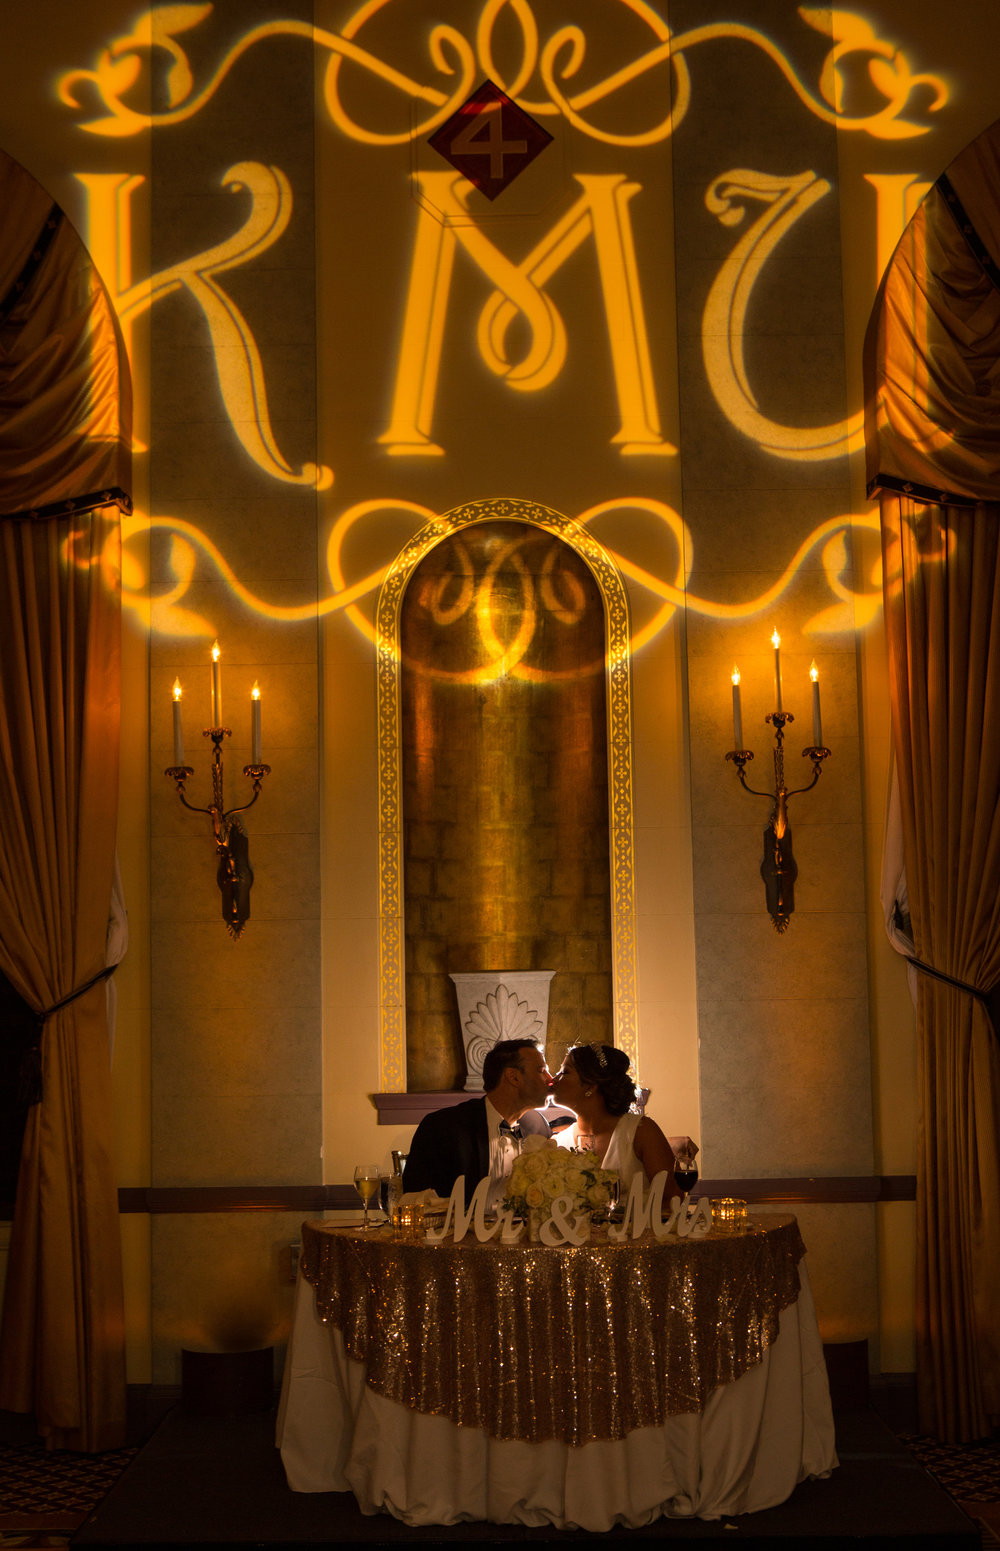 Keith and Kim-Mai's reception was held at Marines' Memorial Club in San Francisco, CA.  Check out this venue on Wedding Spot!